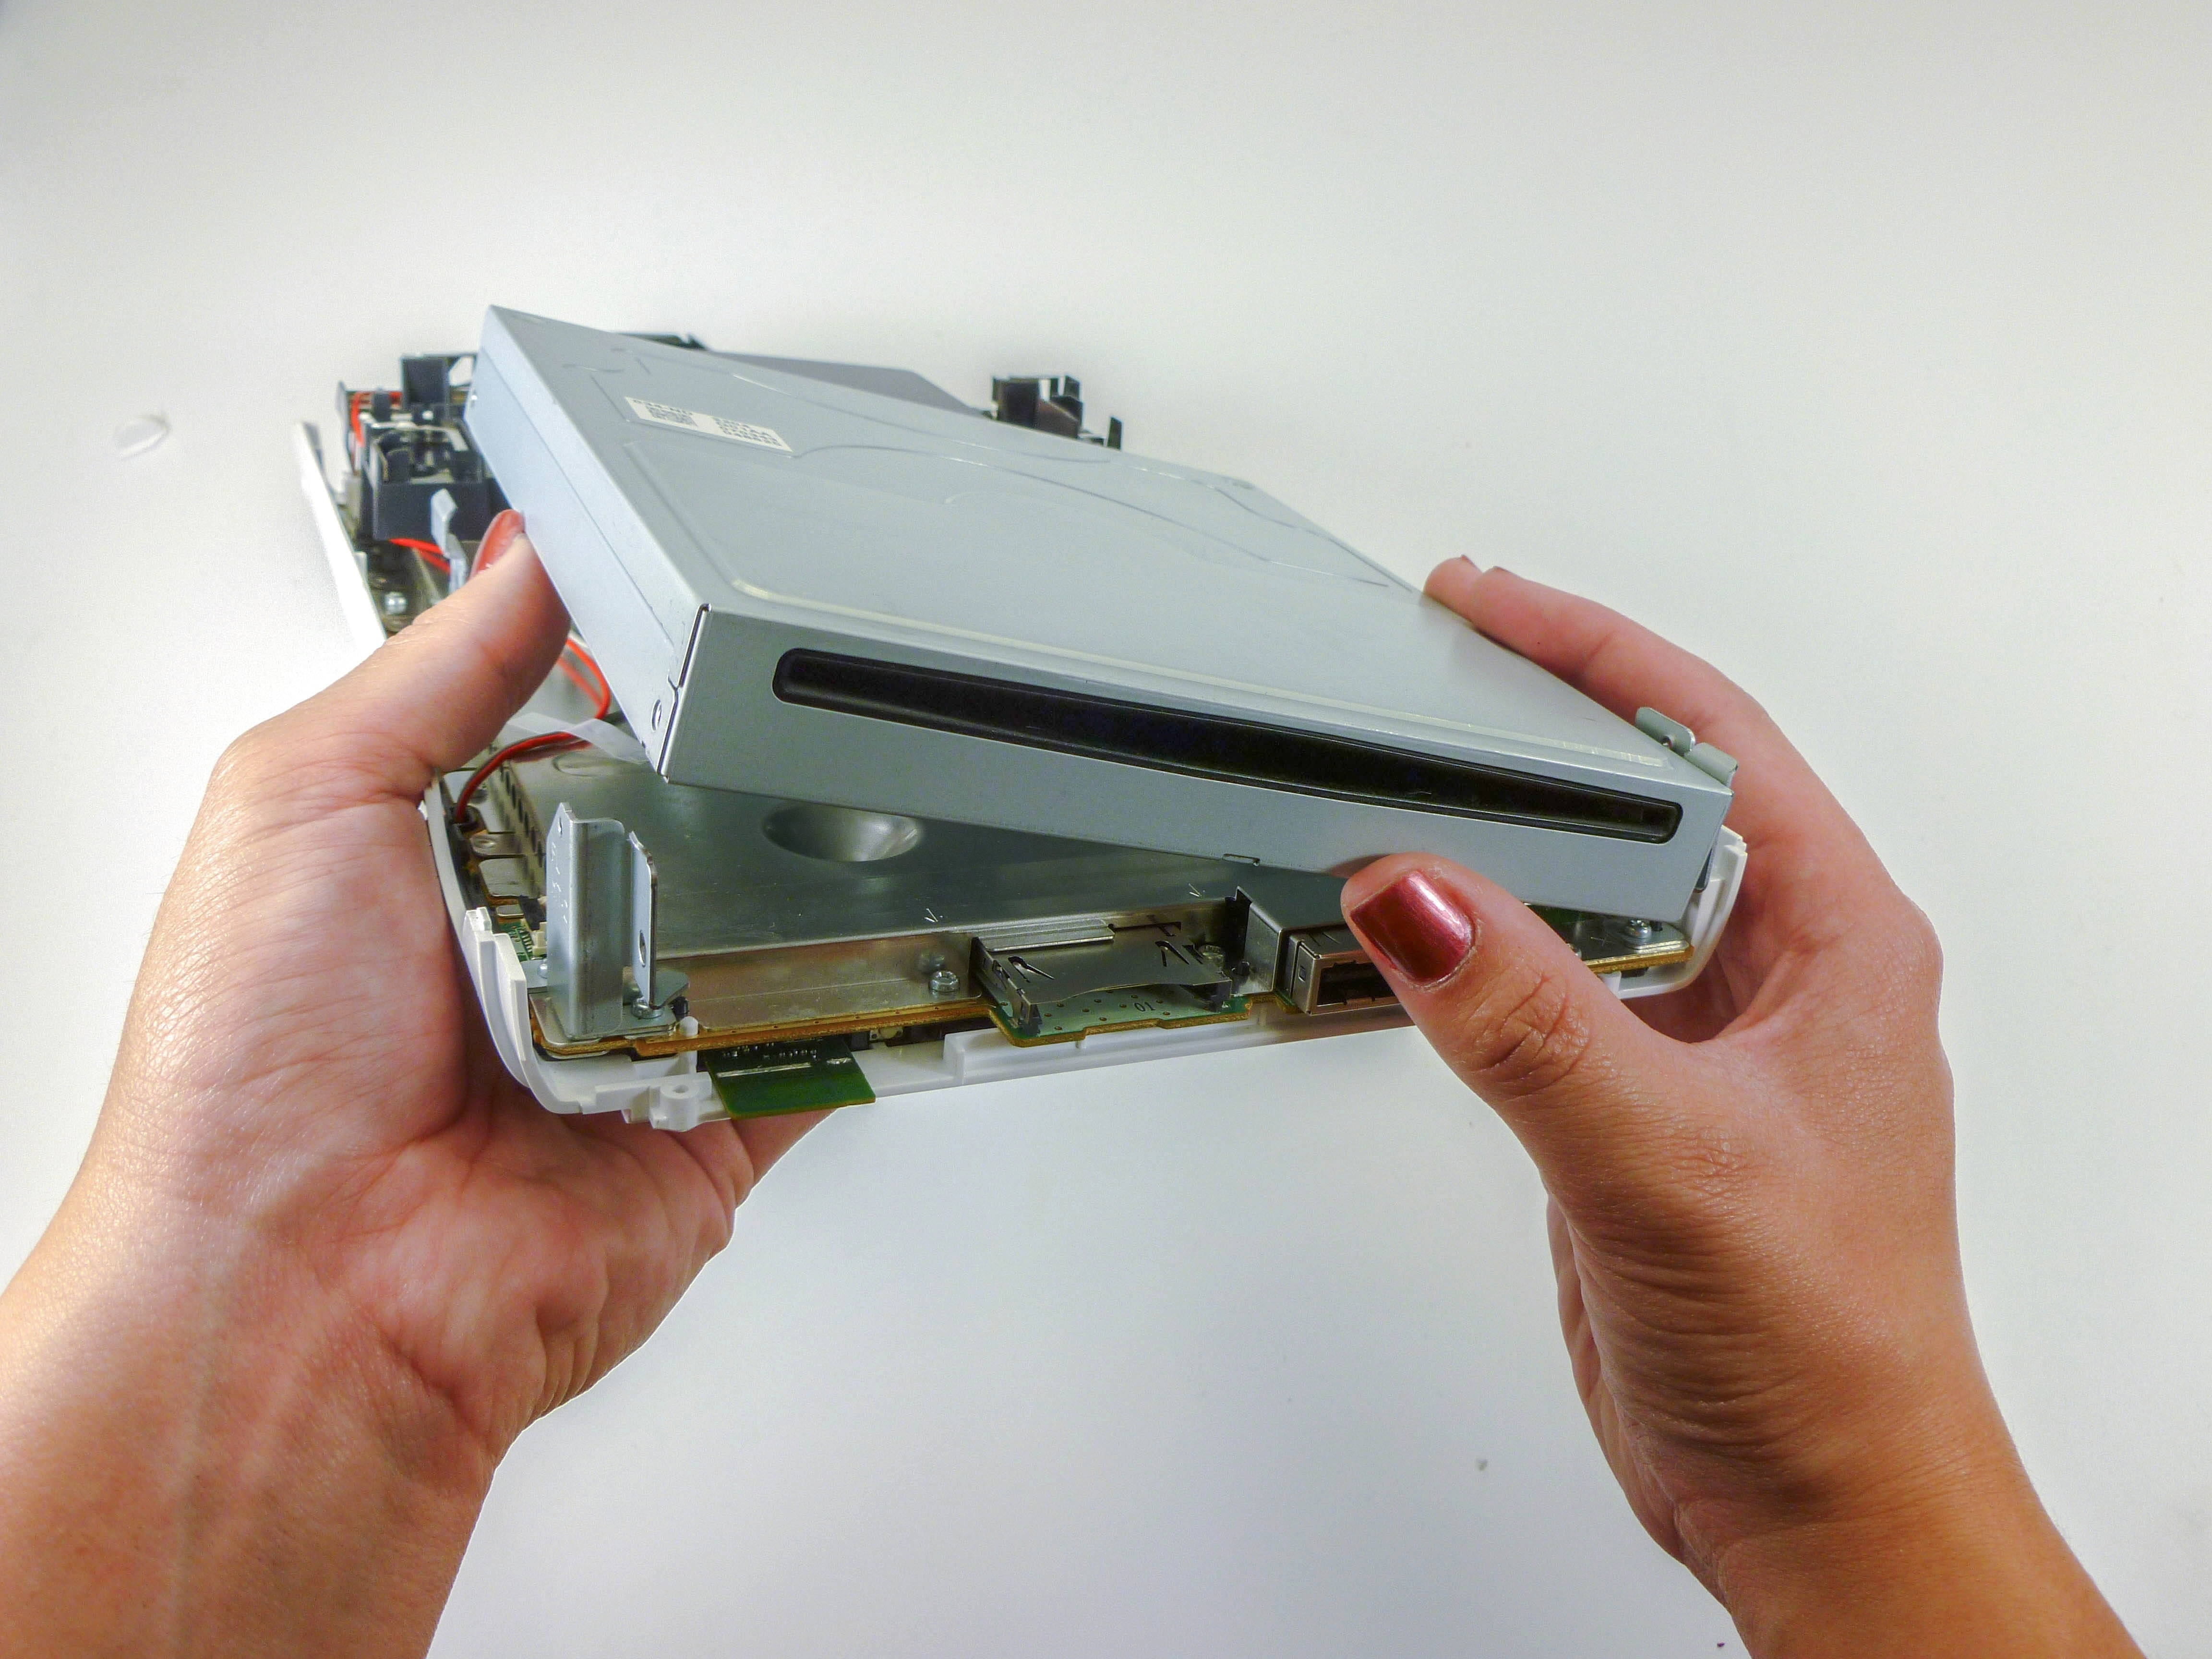 Wii console repair in bangalore dating 6